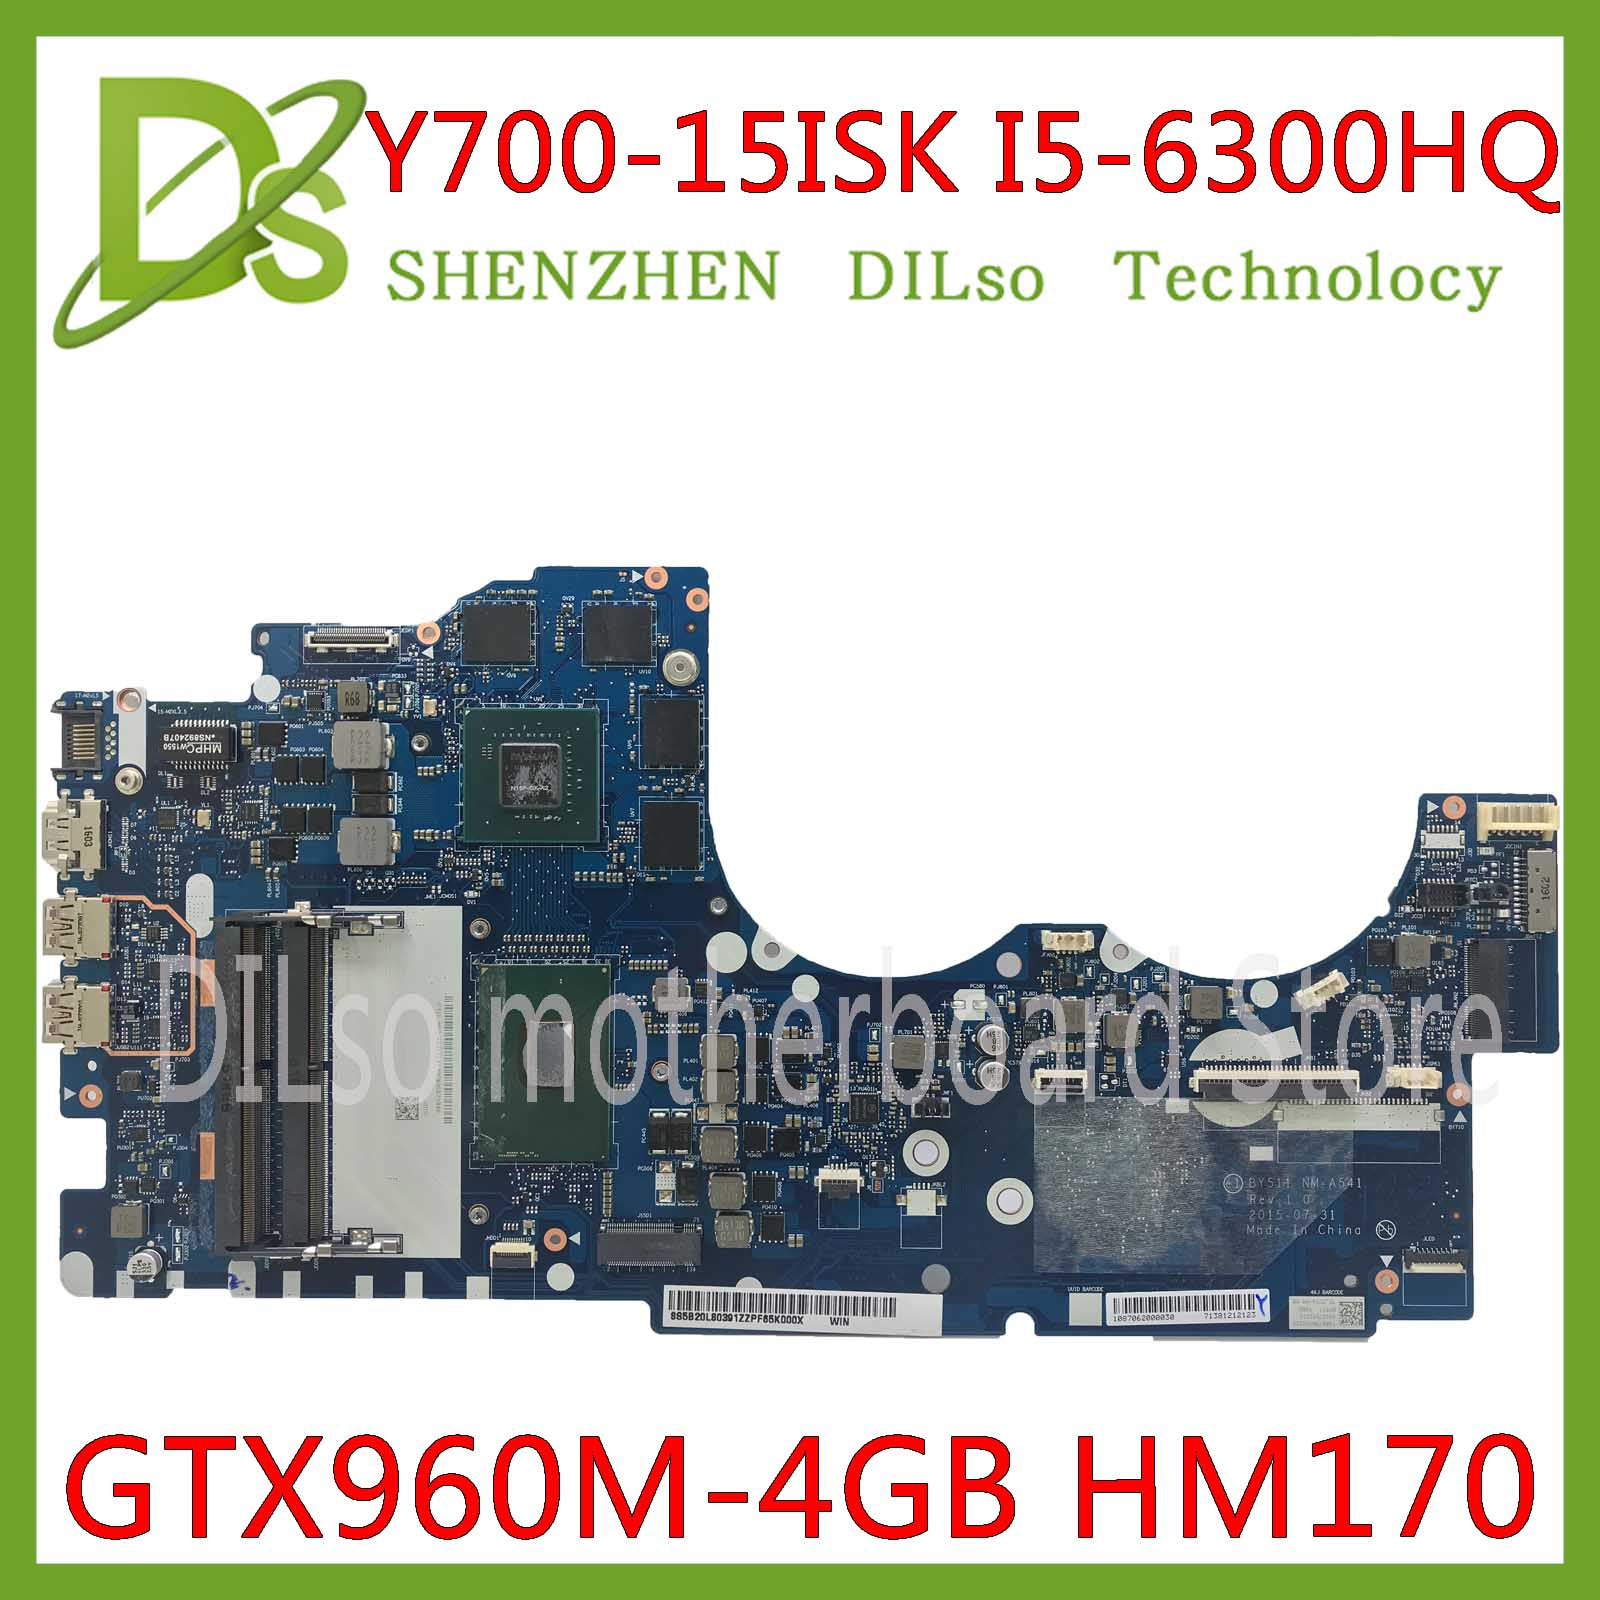 KEFU NM-A541 Motherboard For Lenovo Ideapad Y700-15ISK Y700 Y700-15 BY511 Laptop Motherboard I5-6300 GTX960M 4GB Tested Original